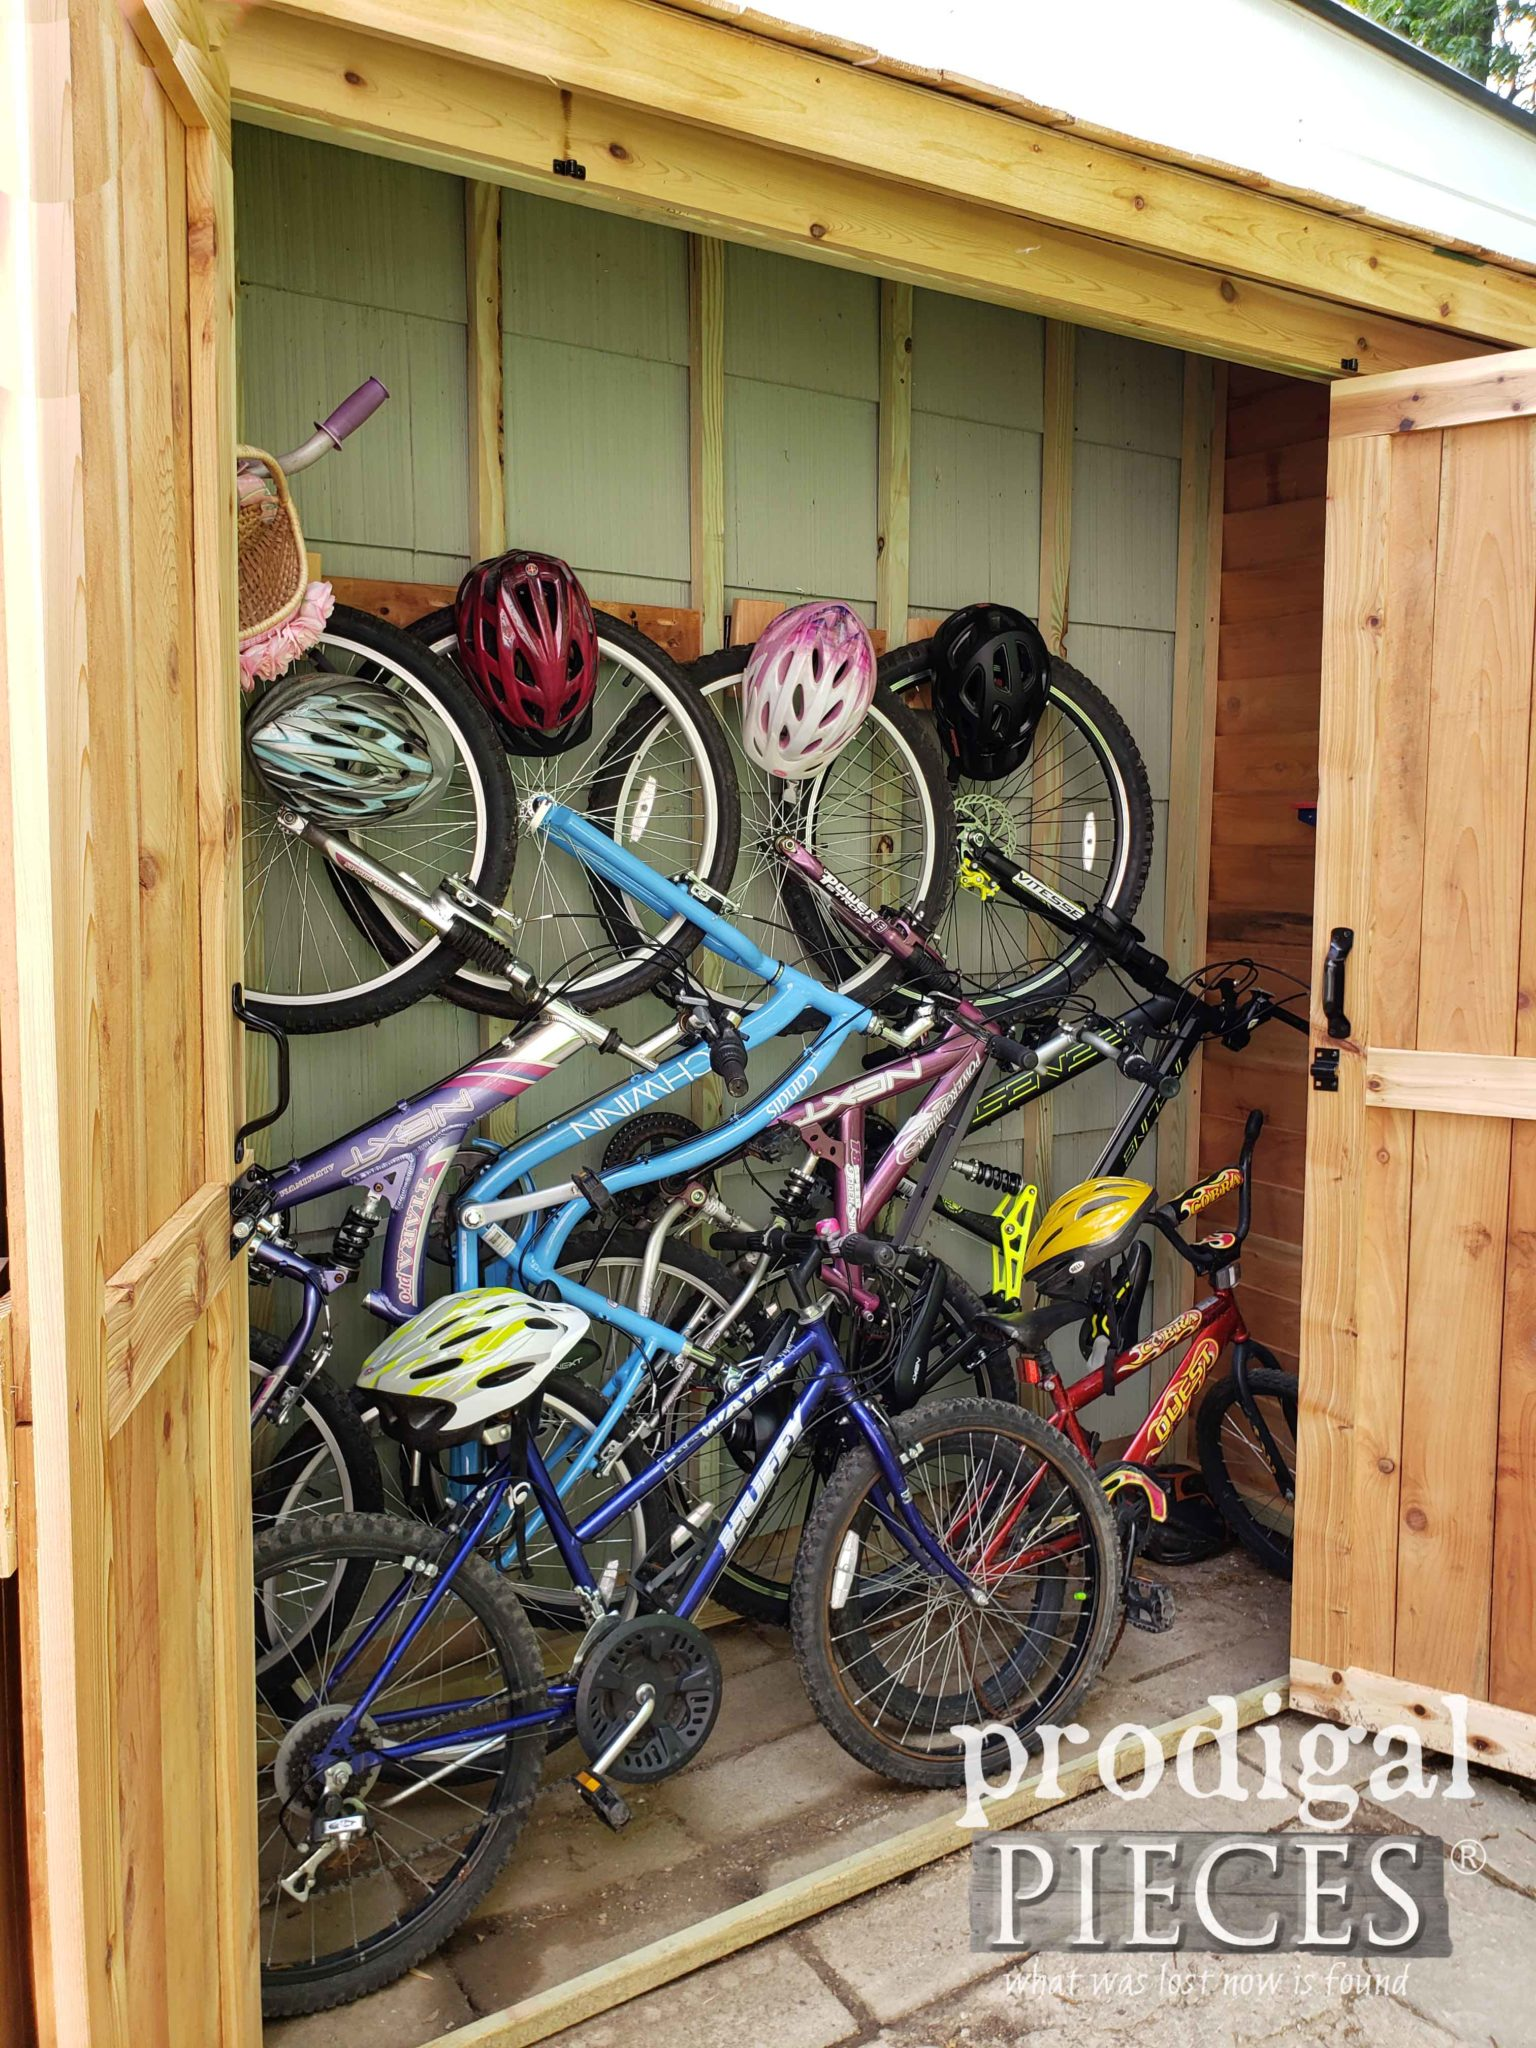 DIY Cedar Bike Shed Interior | prodigalpieces.com #prodigalpieces #diy #home #outdoor #storage #garden